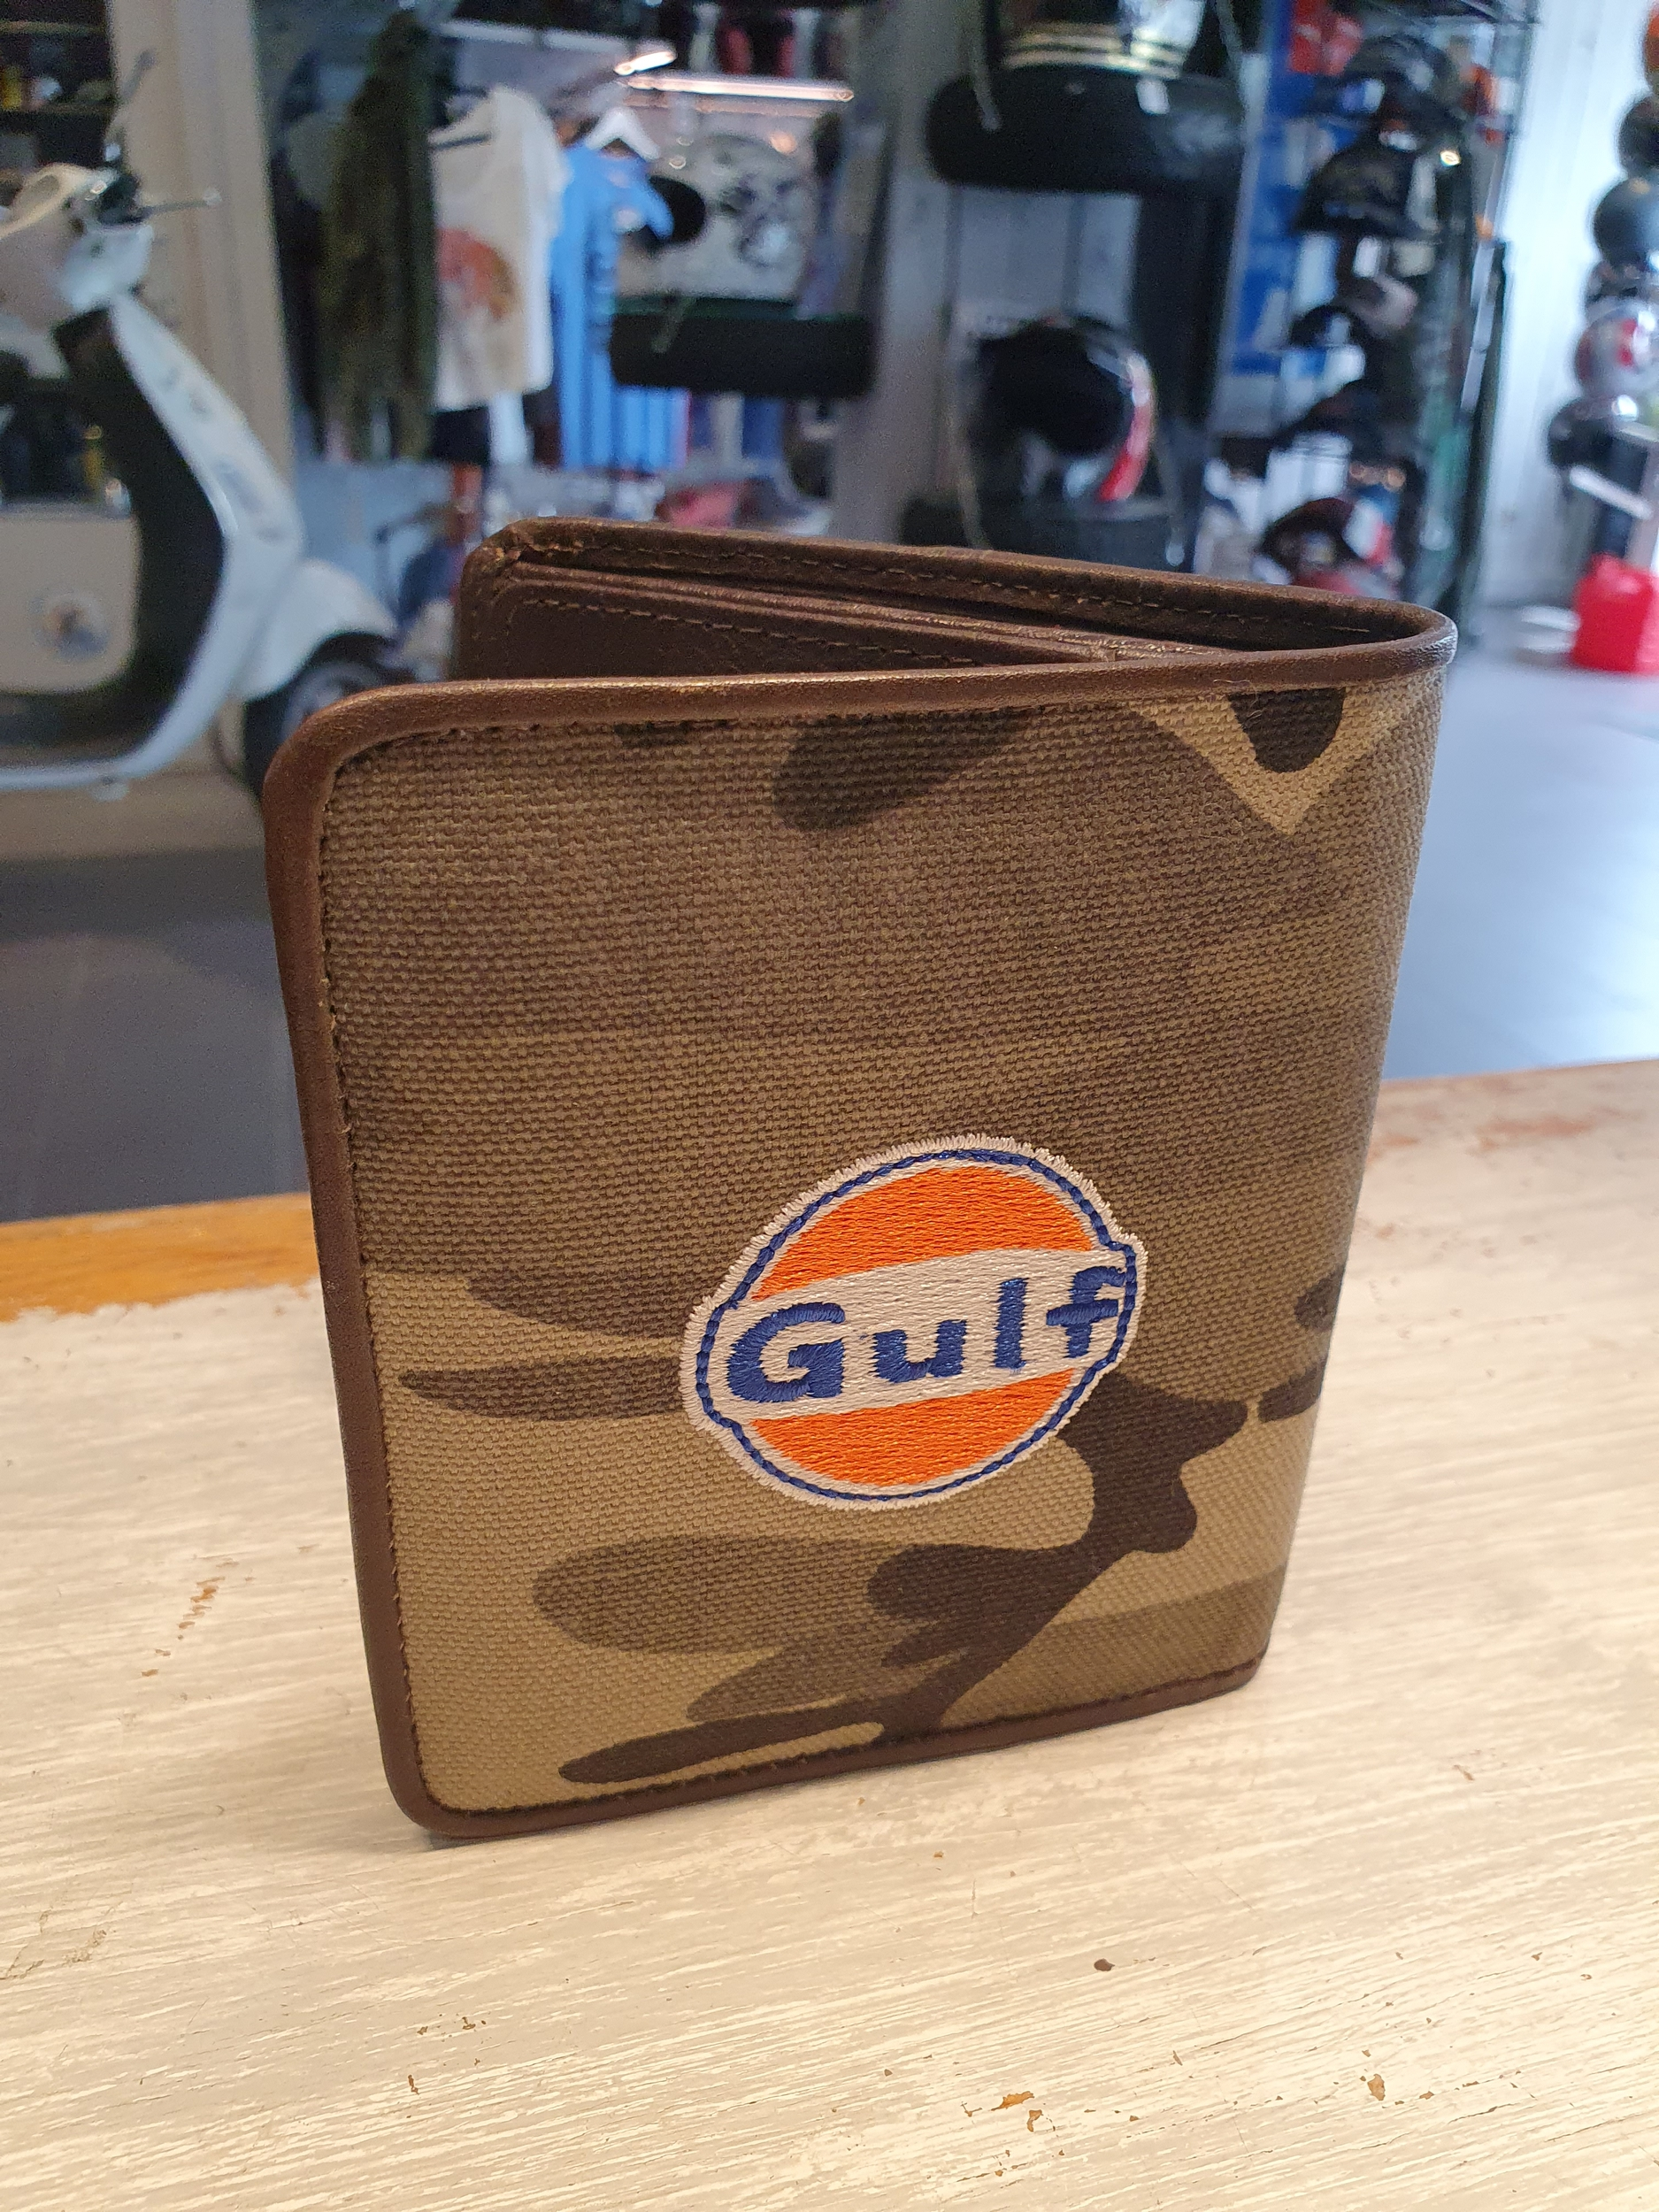 Portefeuilles Gulf camouflage